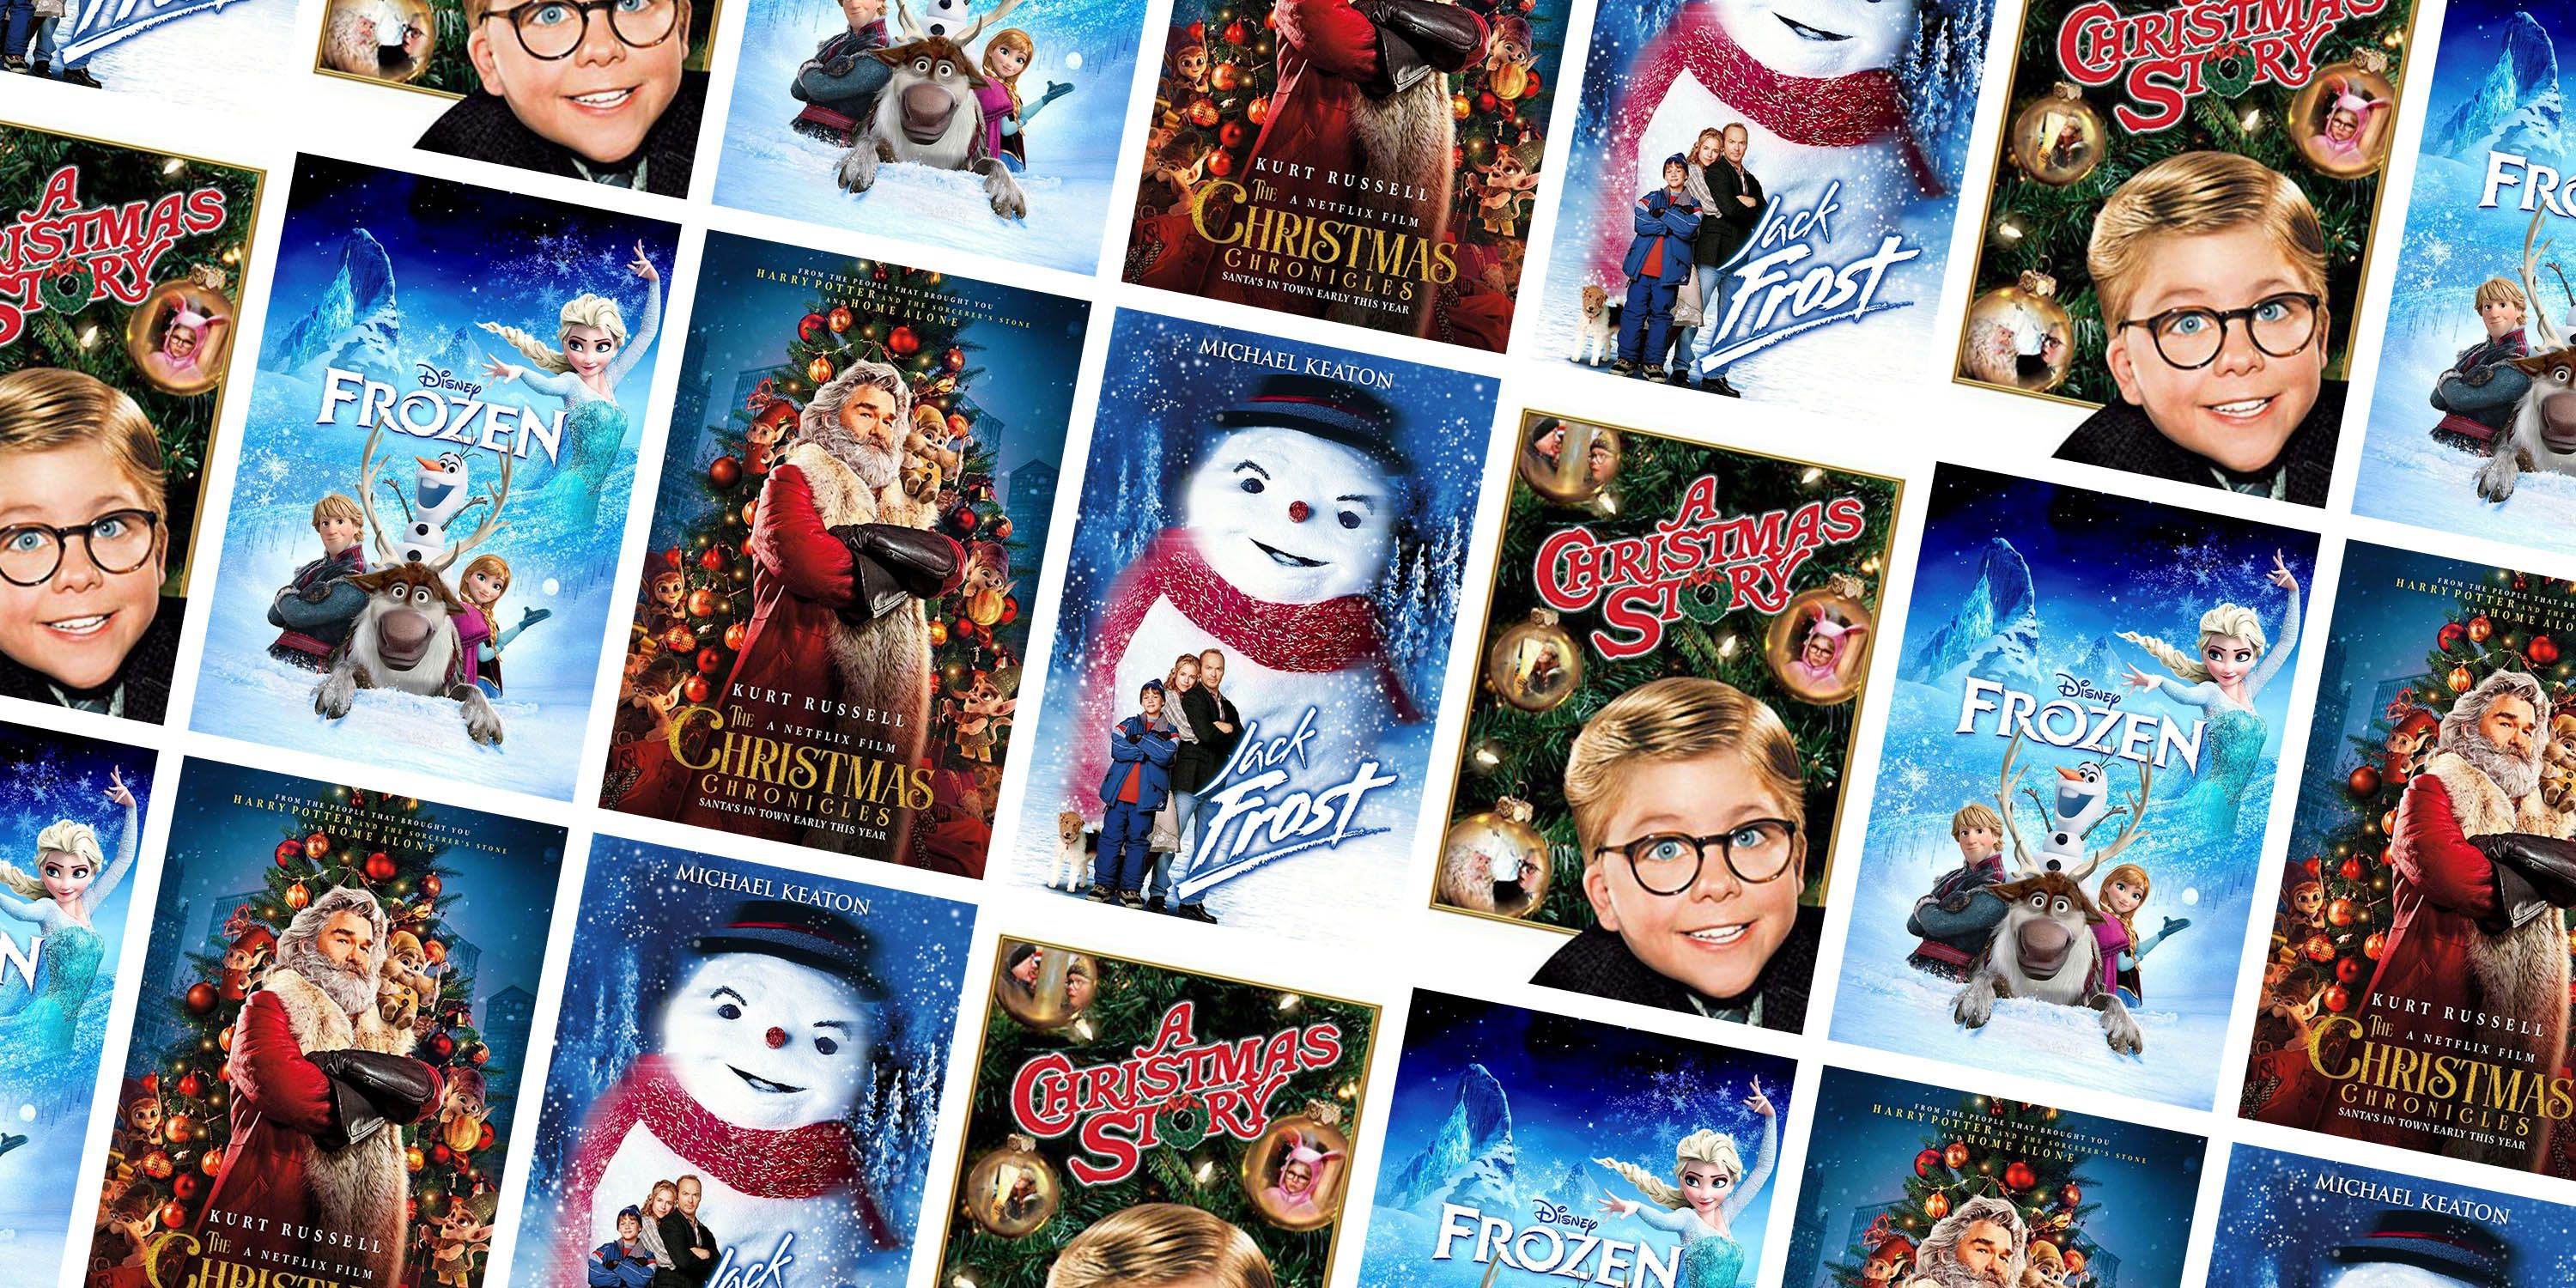 40 Best Christmas Movies For Kids - Family Christmas Films